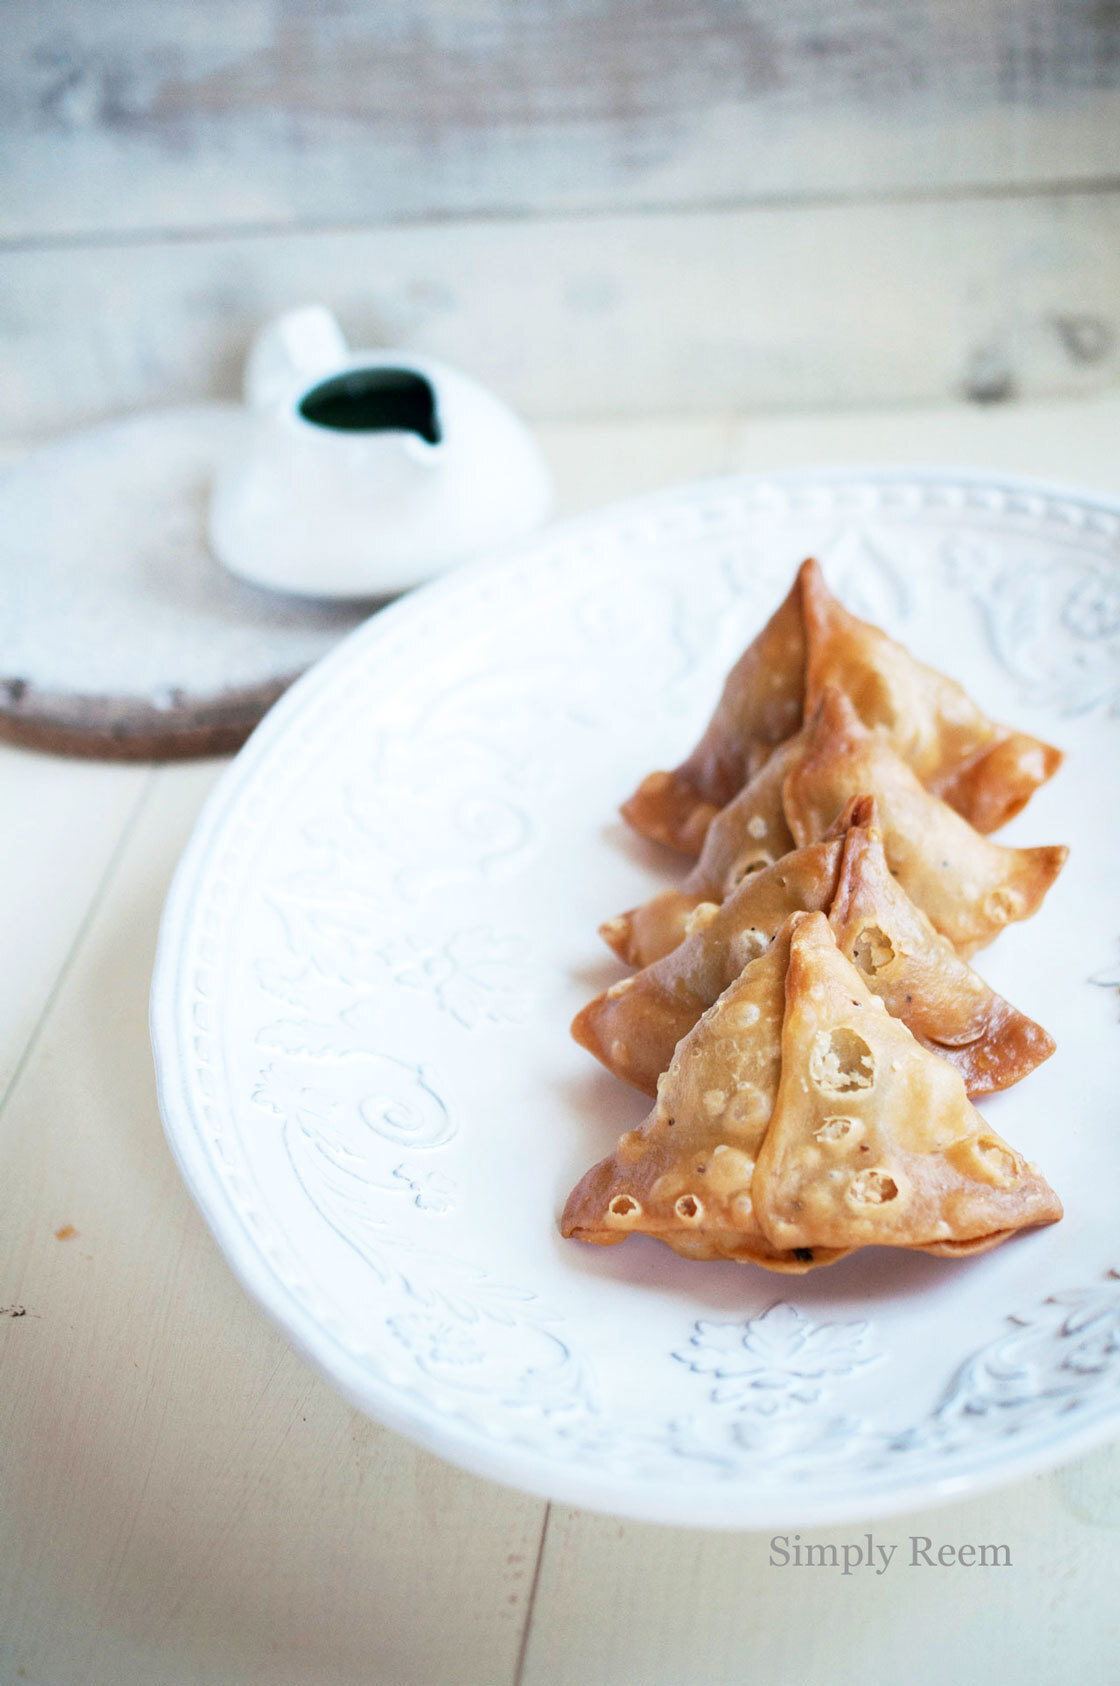 Guest Post : Reem from Simply Reem featuring Samosa